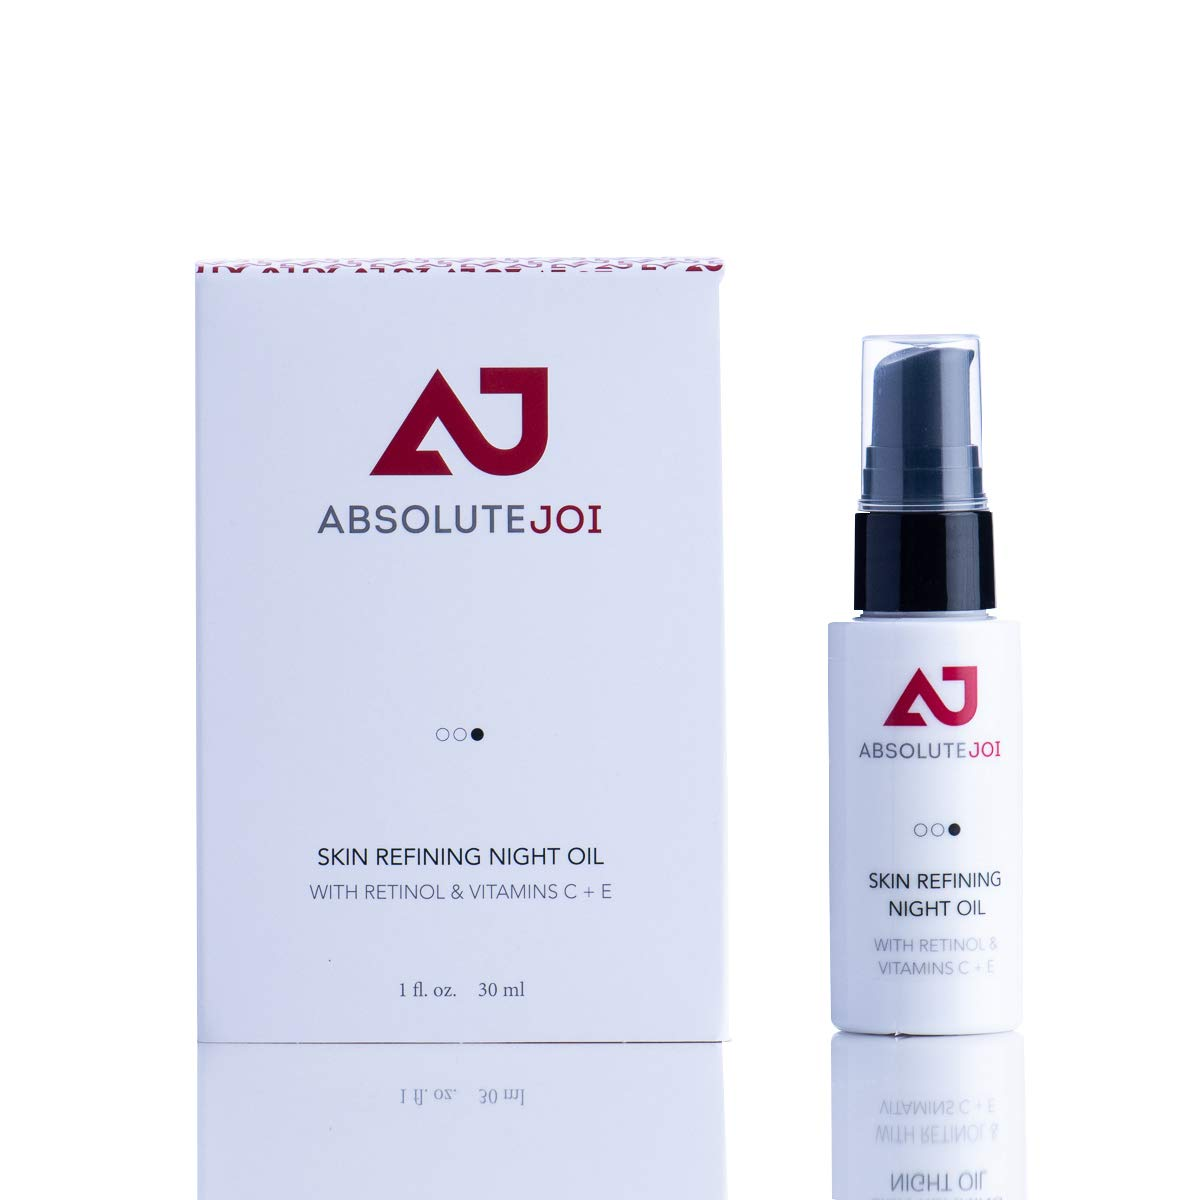 AbsoluteJOI Night Oil with Granactive Retinoid to Help with Hyperpigmentation, Anti Aging Retinol with Rosehip Oil Jojoba Oil Combo for Dark Marks, Vitamin E Oil with Retinol and Vitamin C, 1 oz